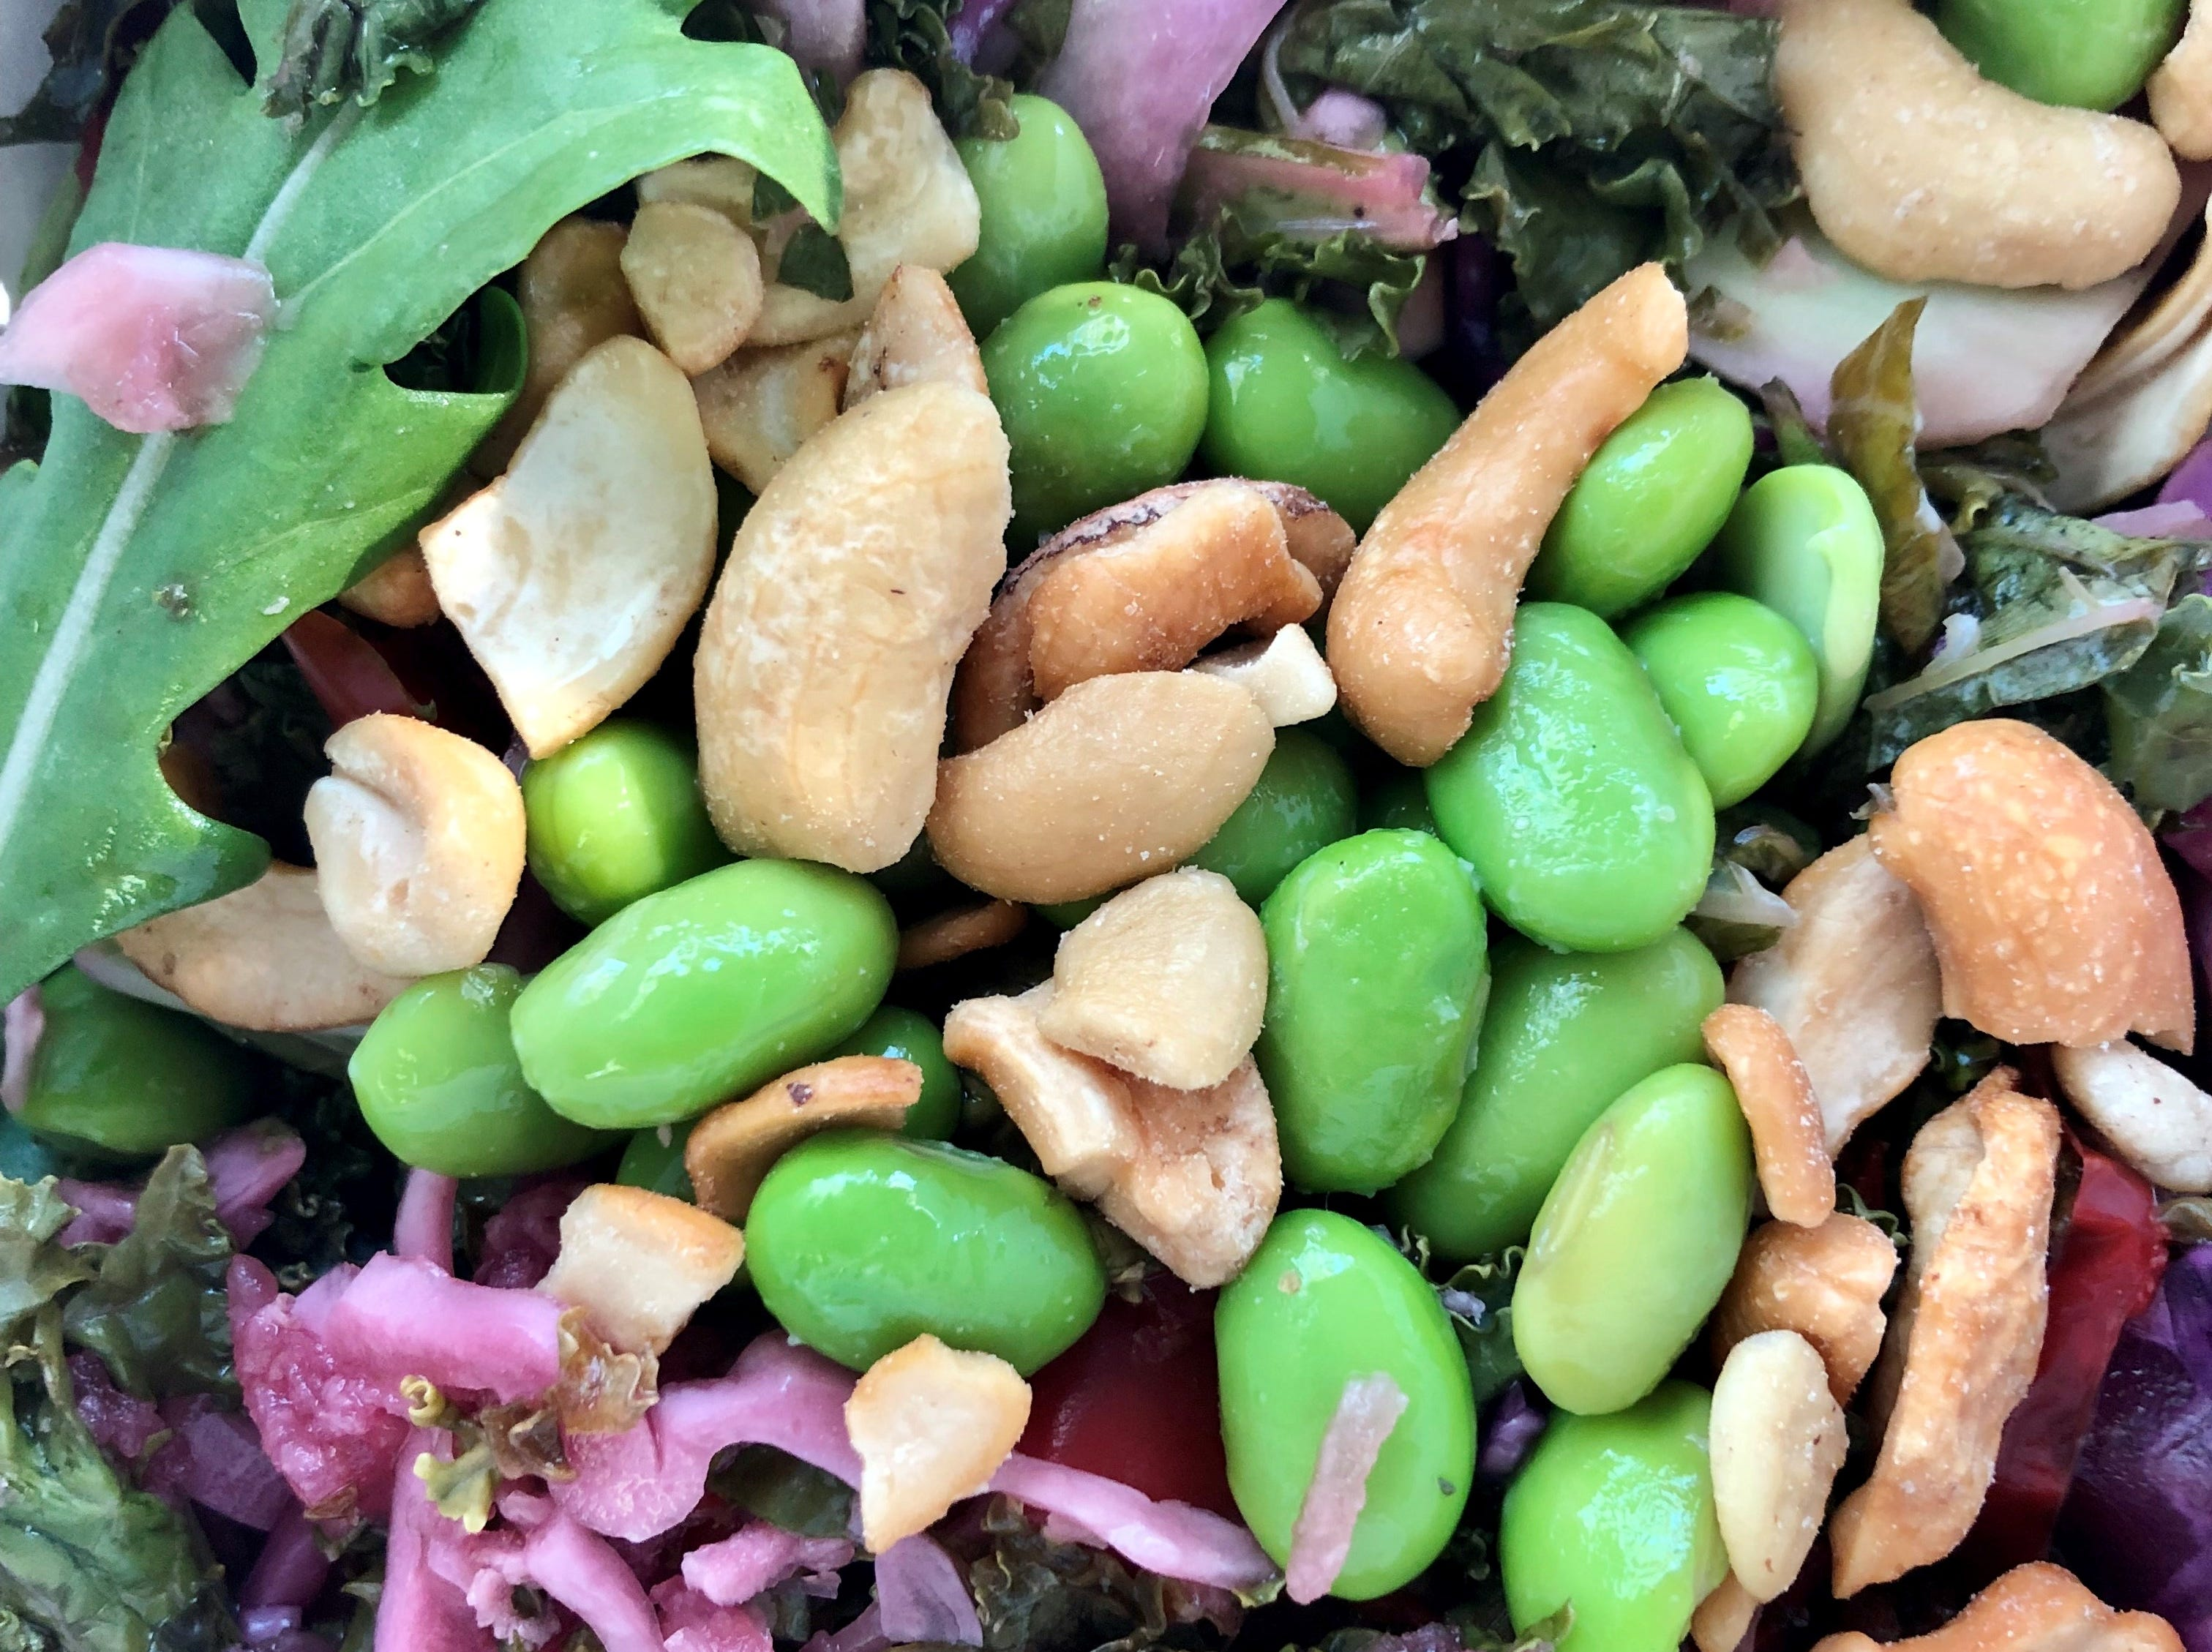 Sesame kale salad with edamame and roasted cashews from The American Grilled Cheese Kitchen in south Fort Myers.